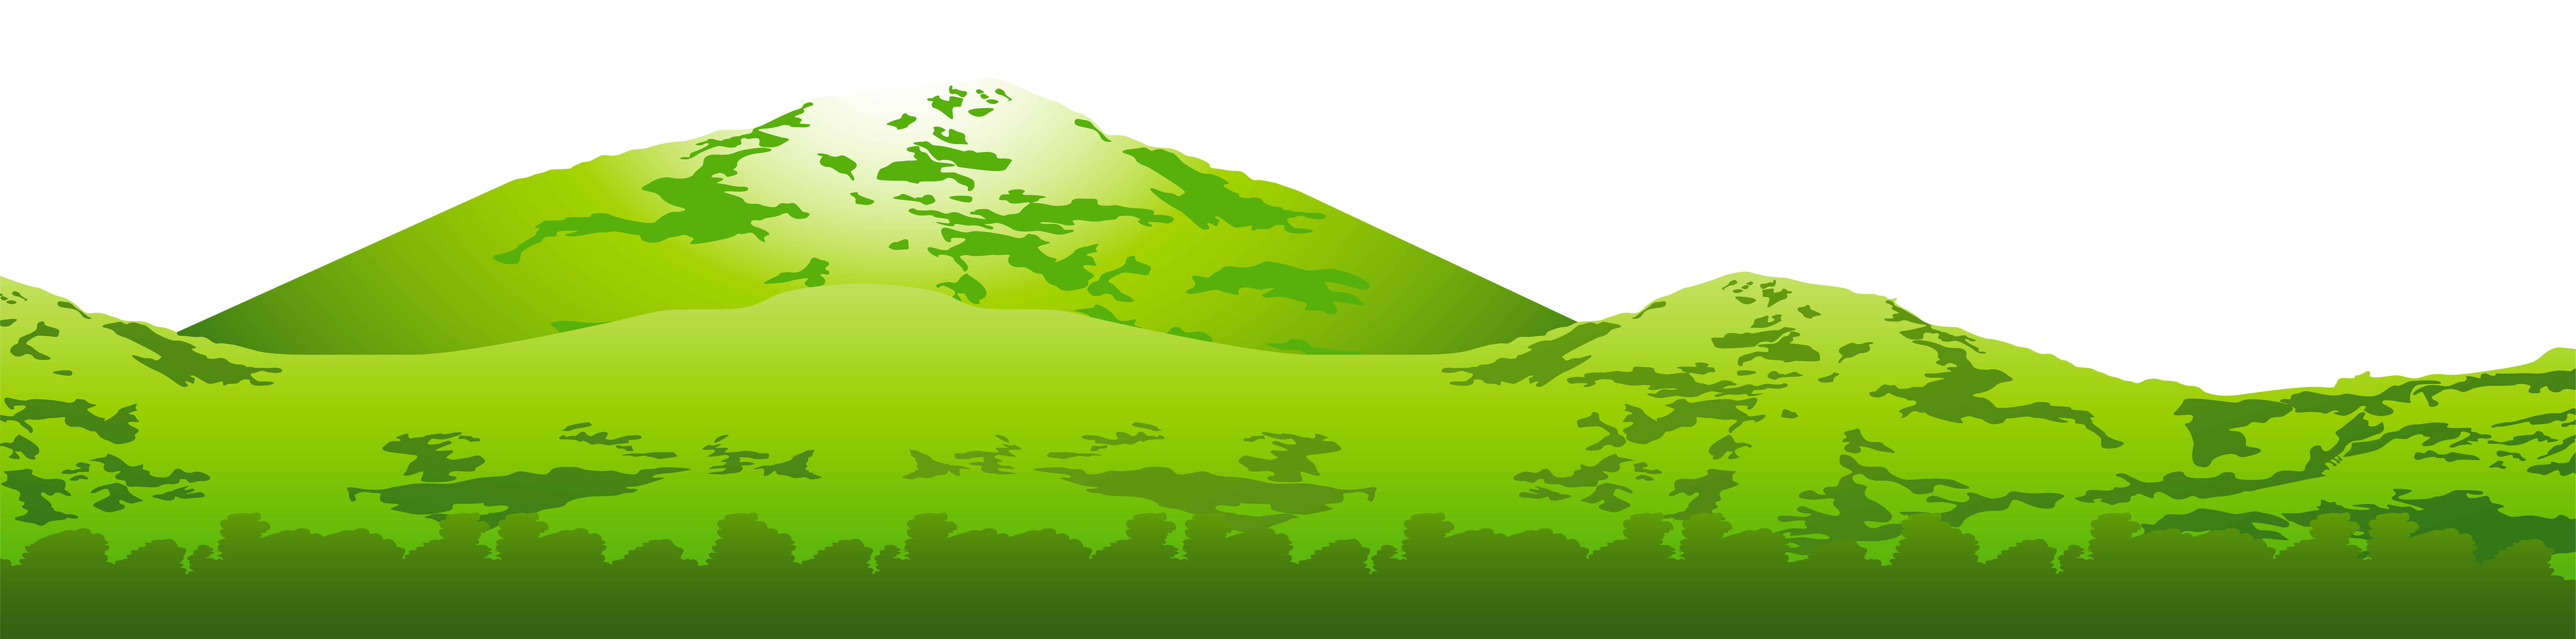 Green Mountain Transparent PNG Clip Art Image.